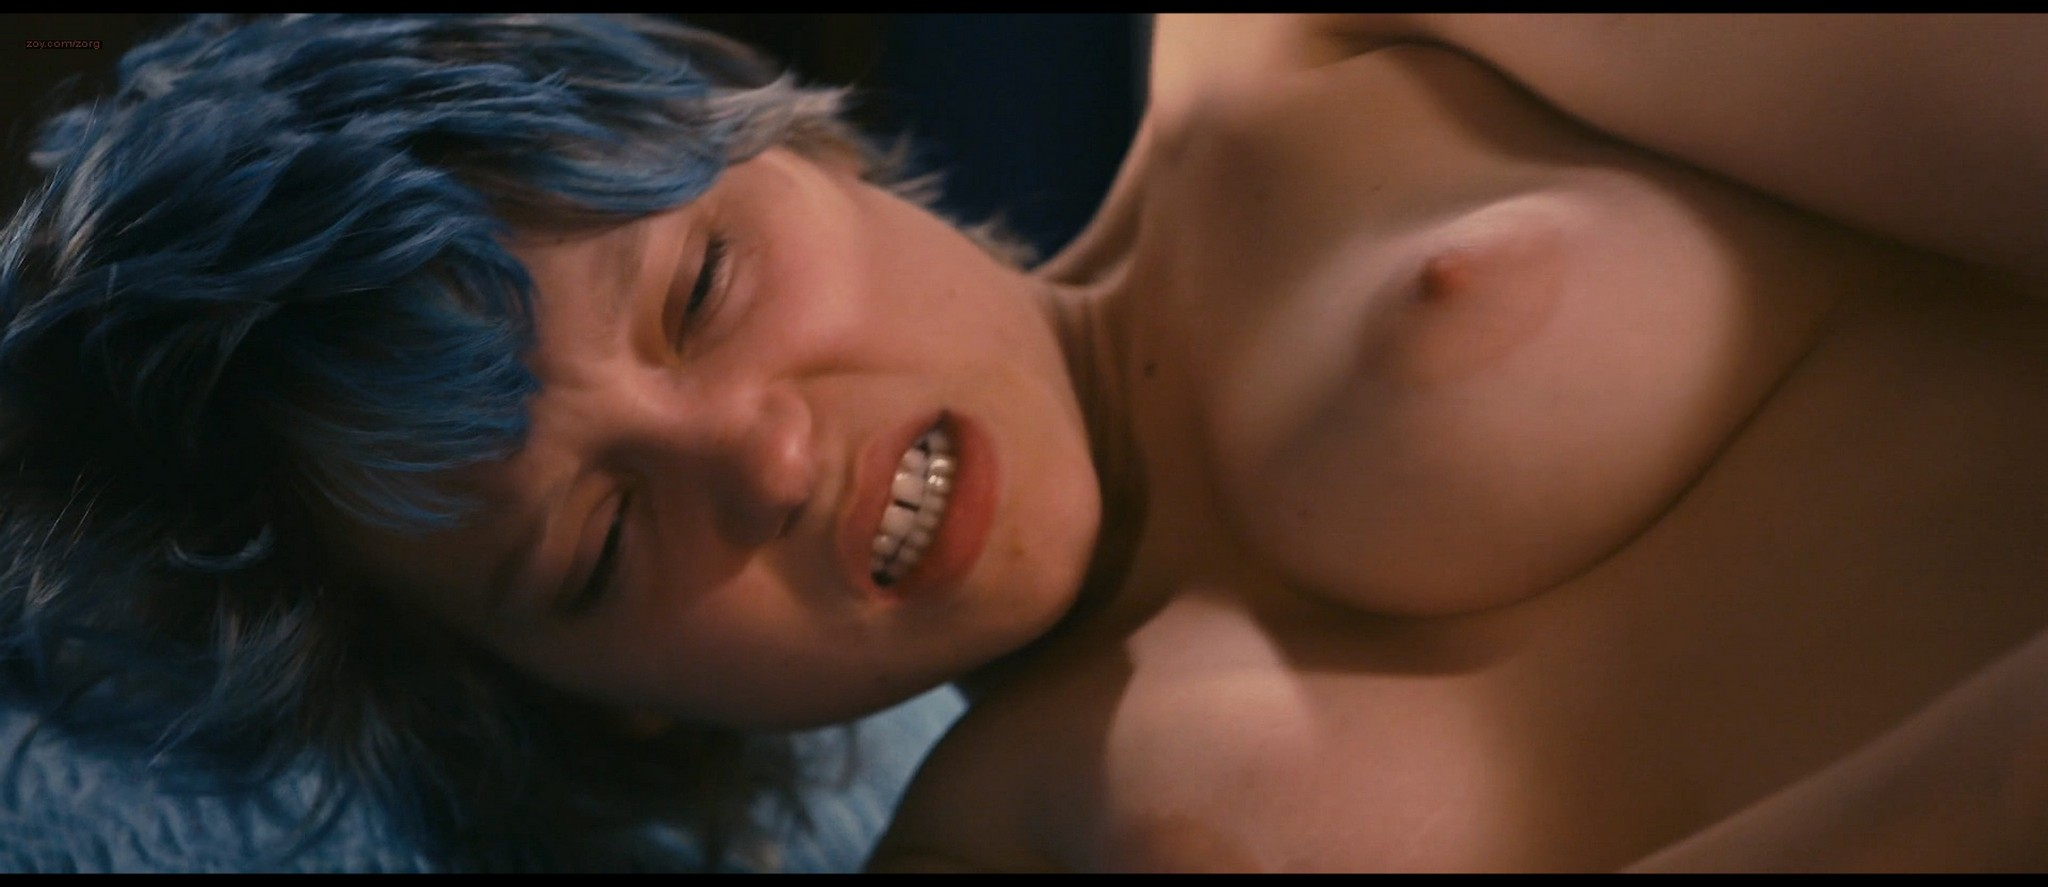 Lea Seydoux and Adele Exarchopoulos in explicit lesbian sex all nude - Blue Is the Warmest Color (2013) HD 1080p BluRay (7)